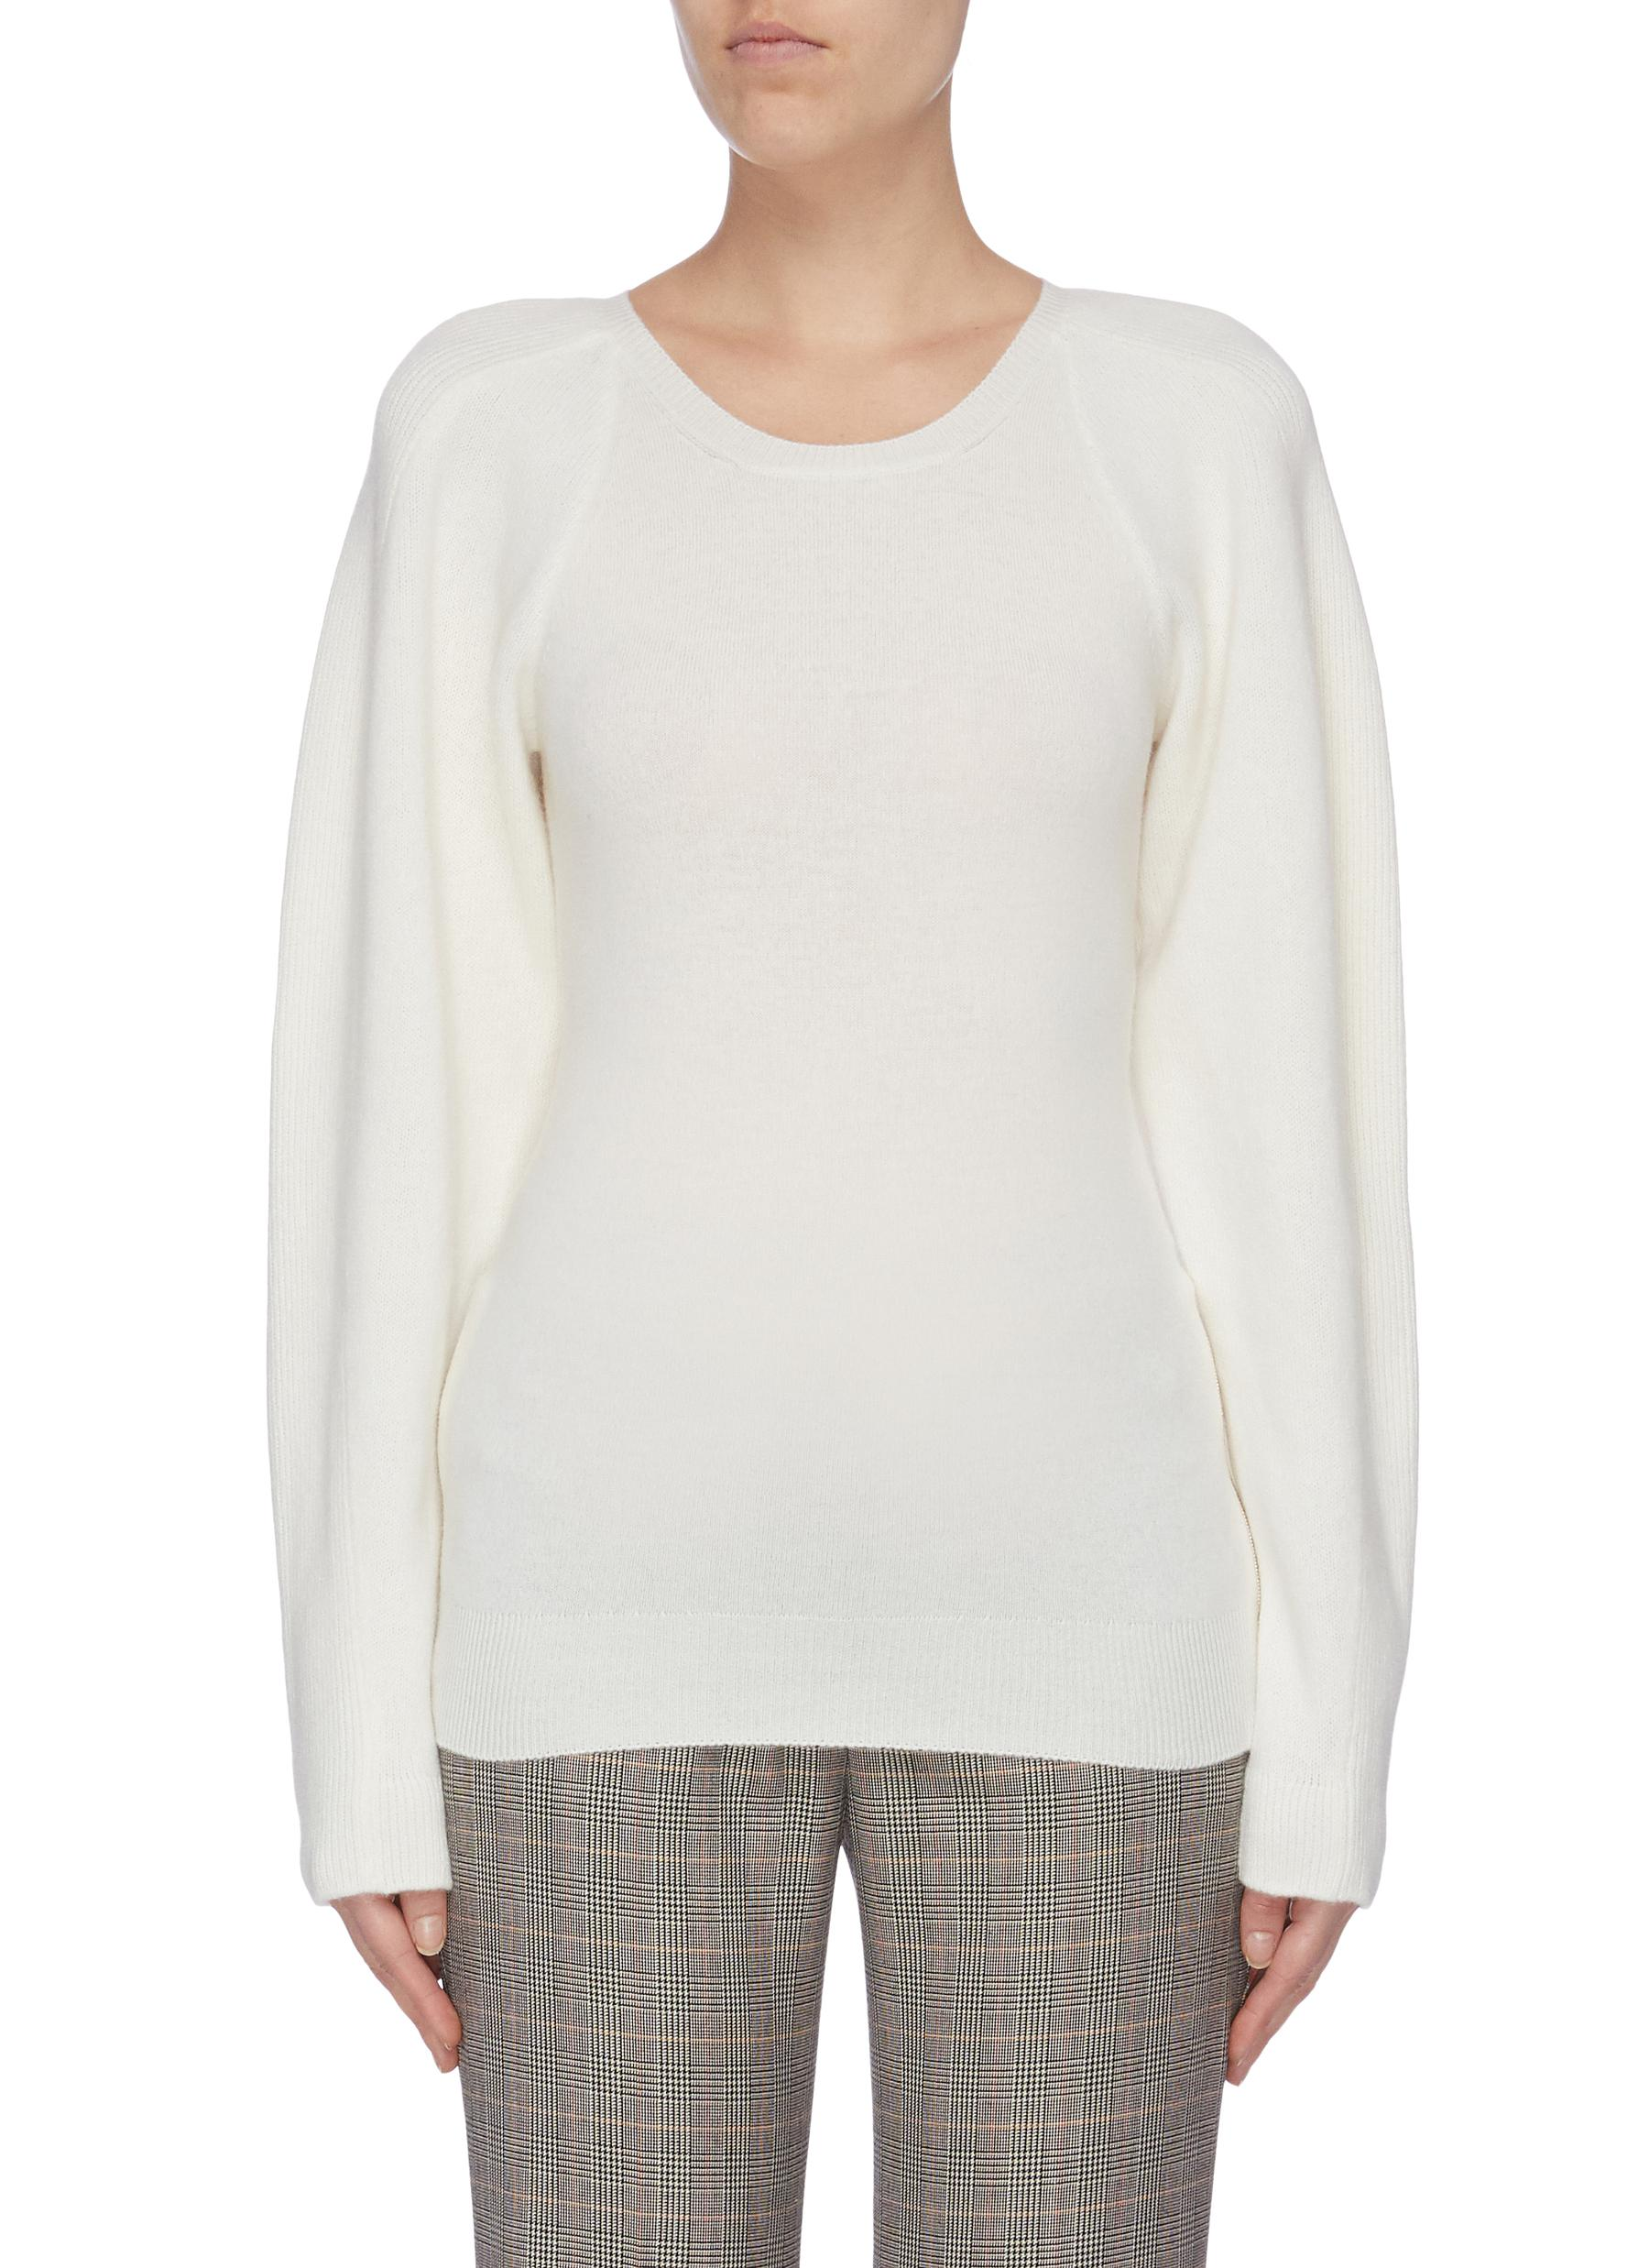 Soft Simple balloon sleeve sweater by Stella Mccartney